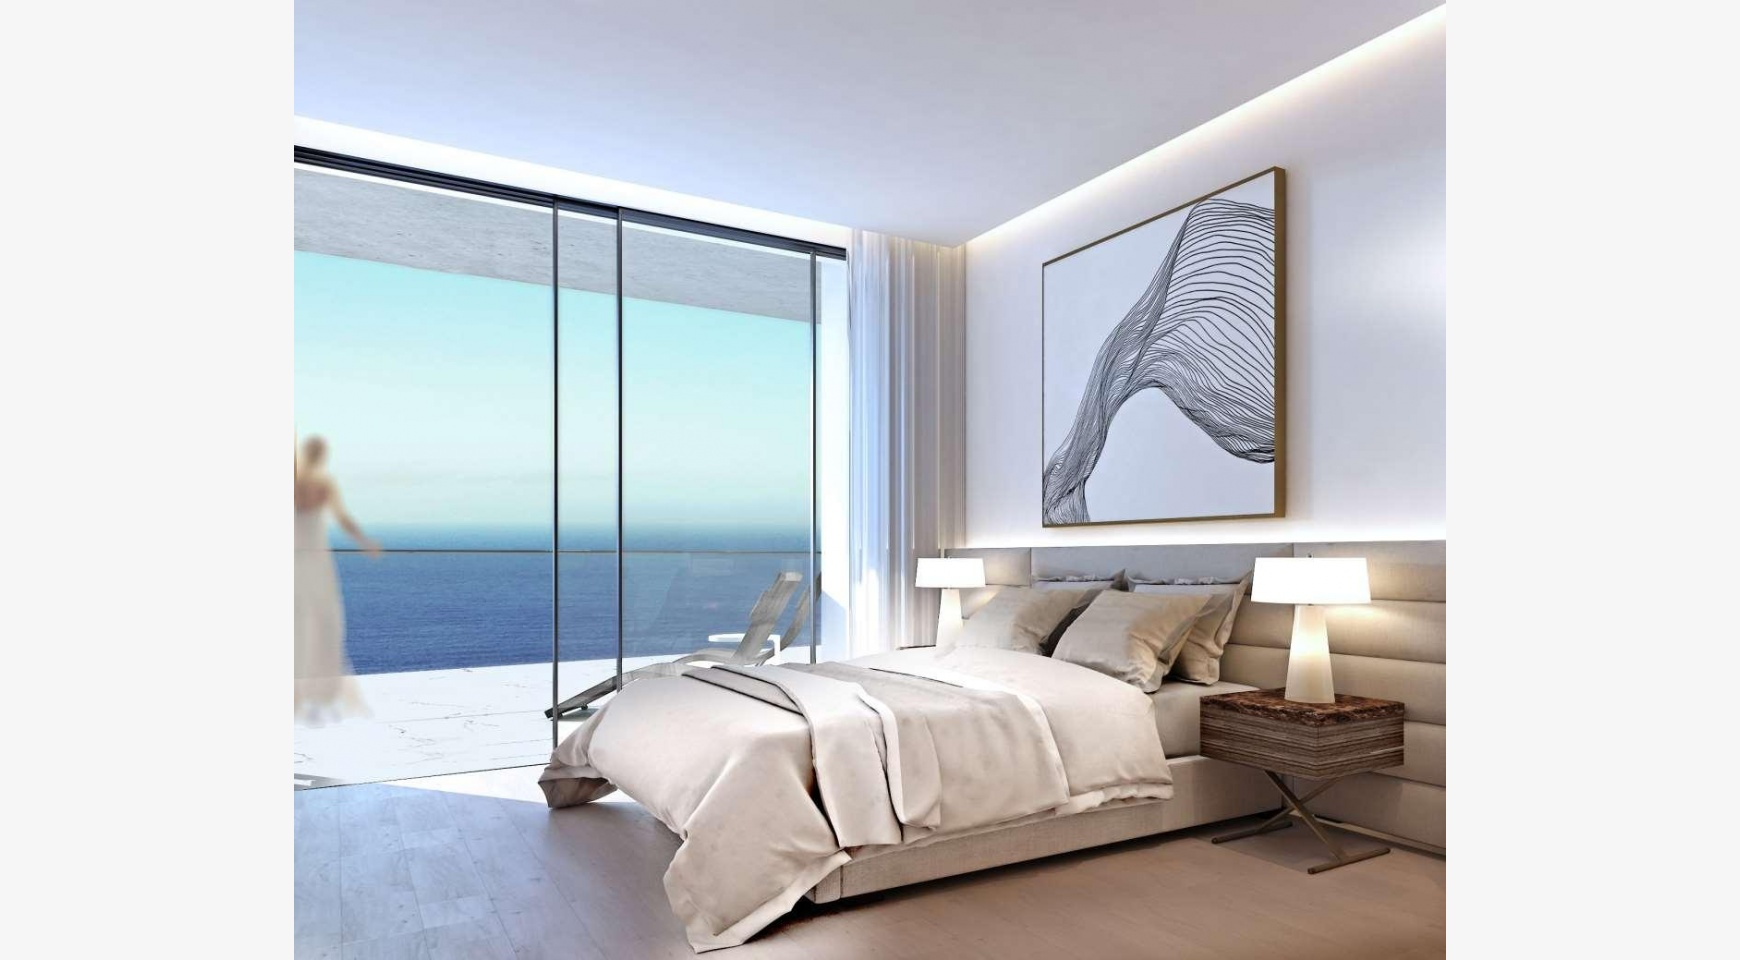 Exclusive 4 Bedroom Apartment in a New Project by the Sea in the City Centre - 8